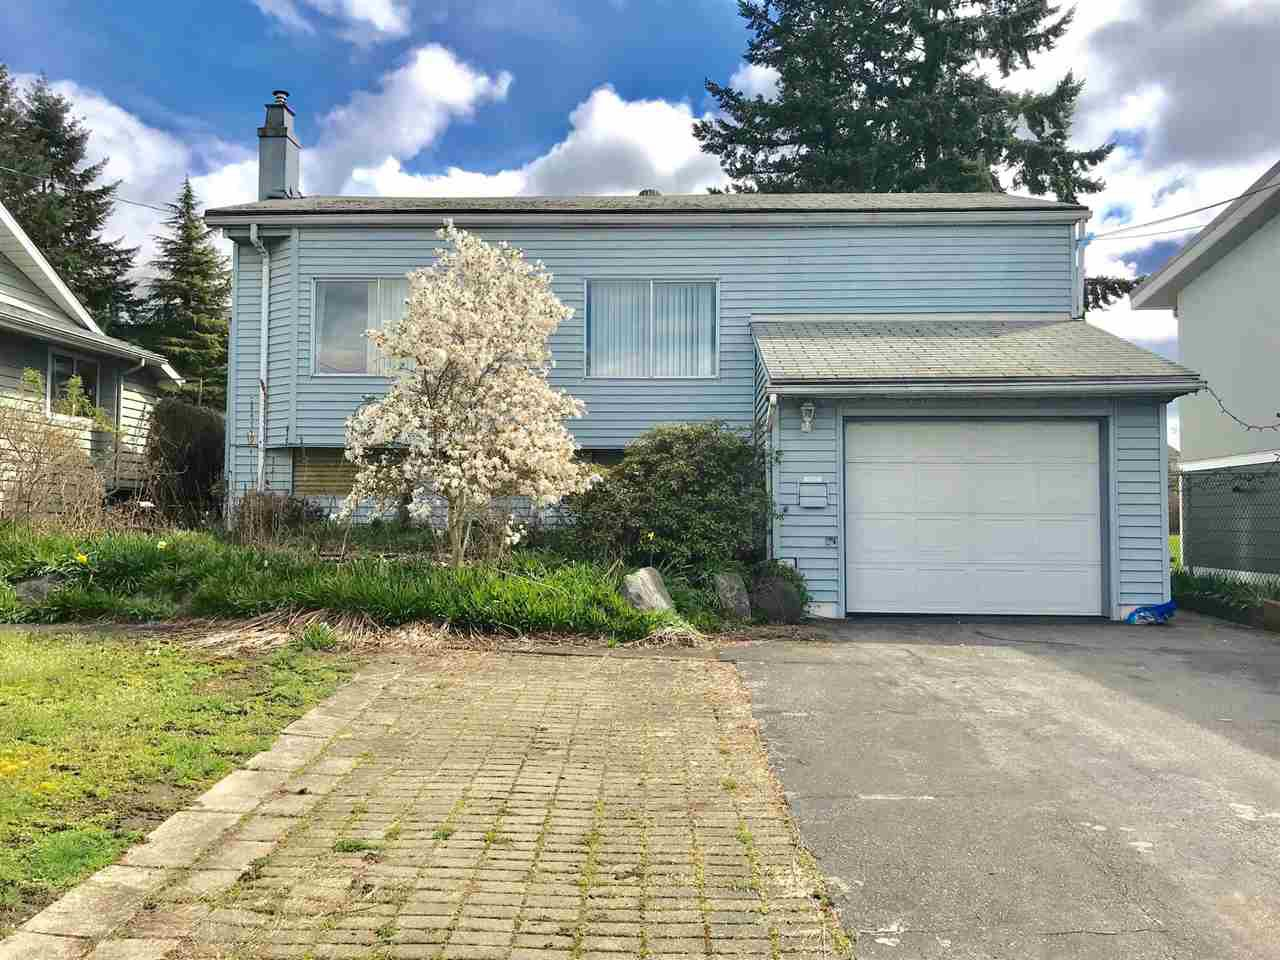 Main Photo: 6912 PATTERSON Avenue in Burnaby: Metrotown House for sale (Burnaby South)  : MLS®# R2256747